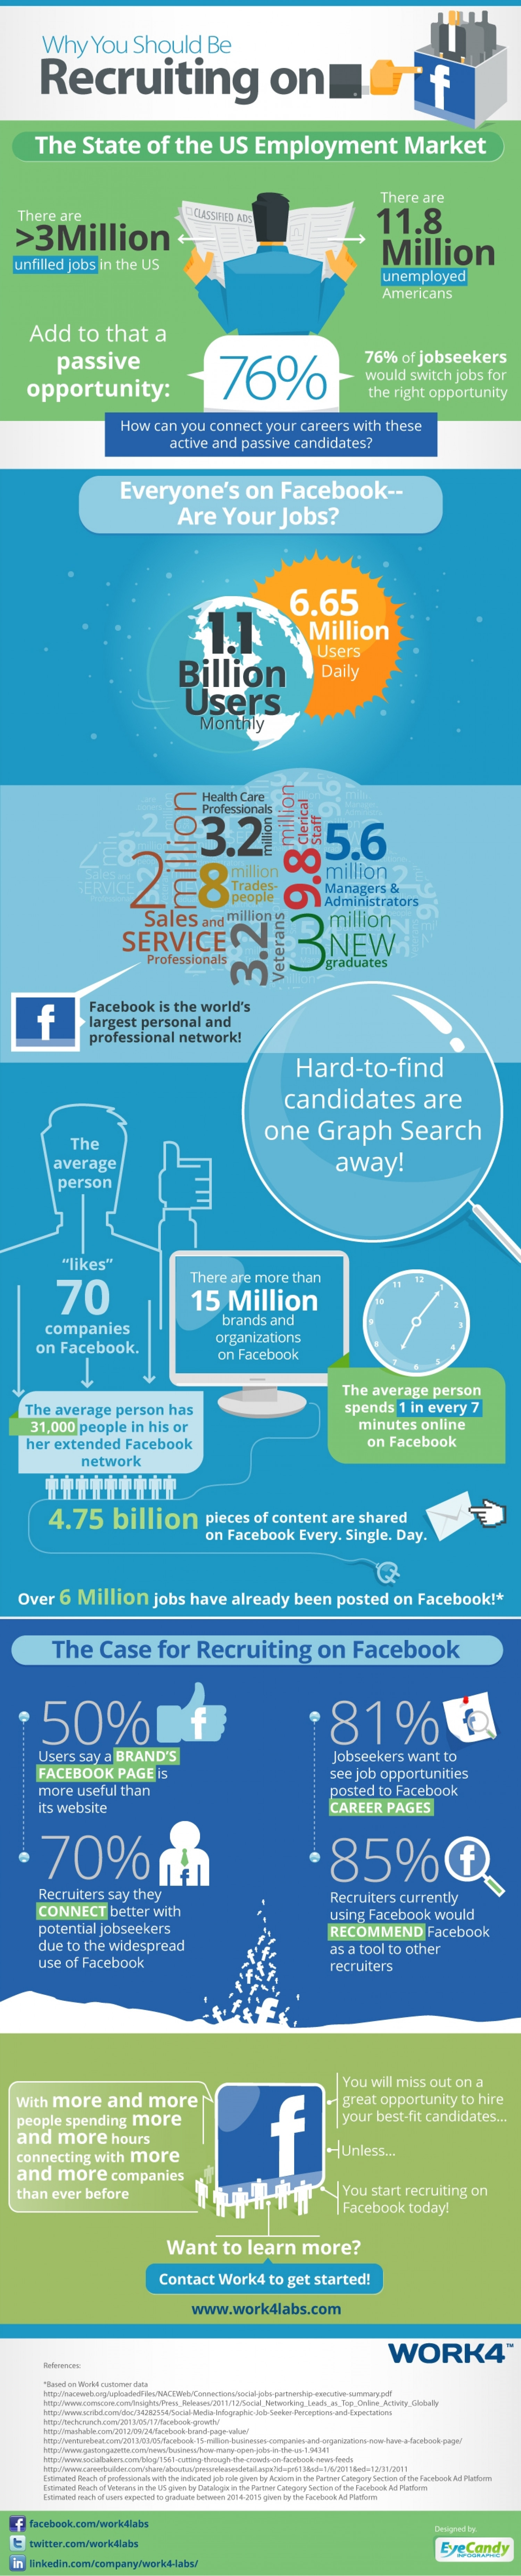 Why You Should Be Recruiting on Facebook Infographic